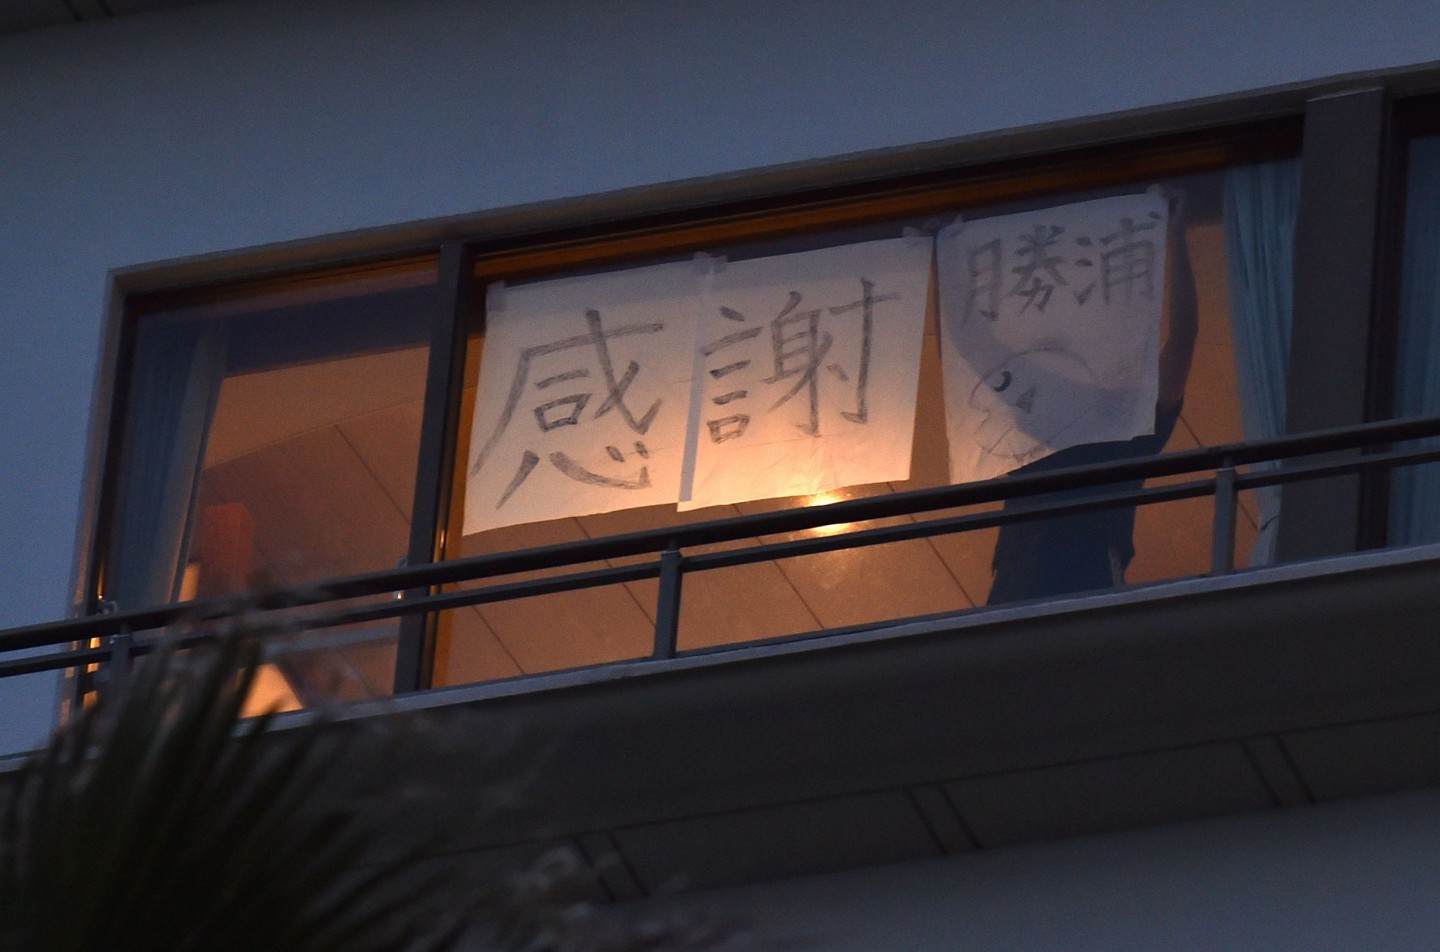 """A person who returned from Wuhan and is staying in quarantine in a hotel in Katsuura puts up the message """"Thank you, Katsuura"""" on the hotel window, on 12 February 2020. (Kazuhiro Nogi/AFP)"""